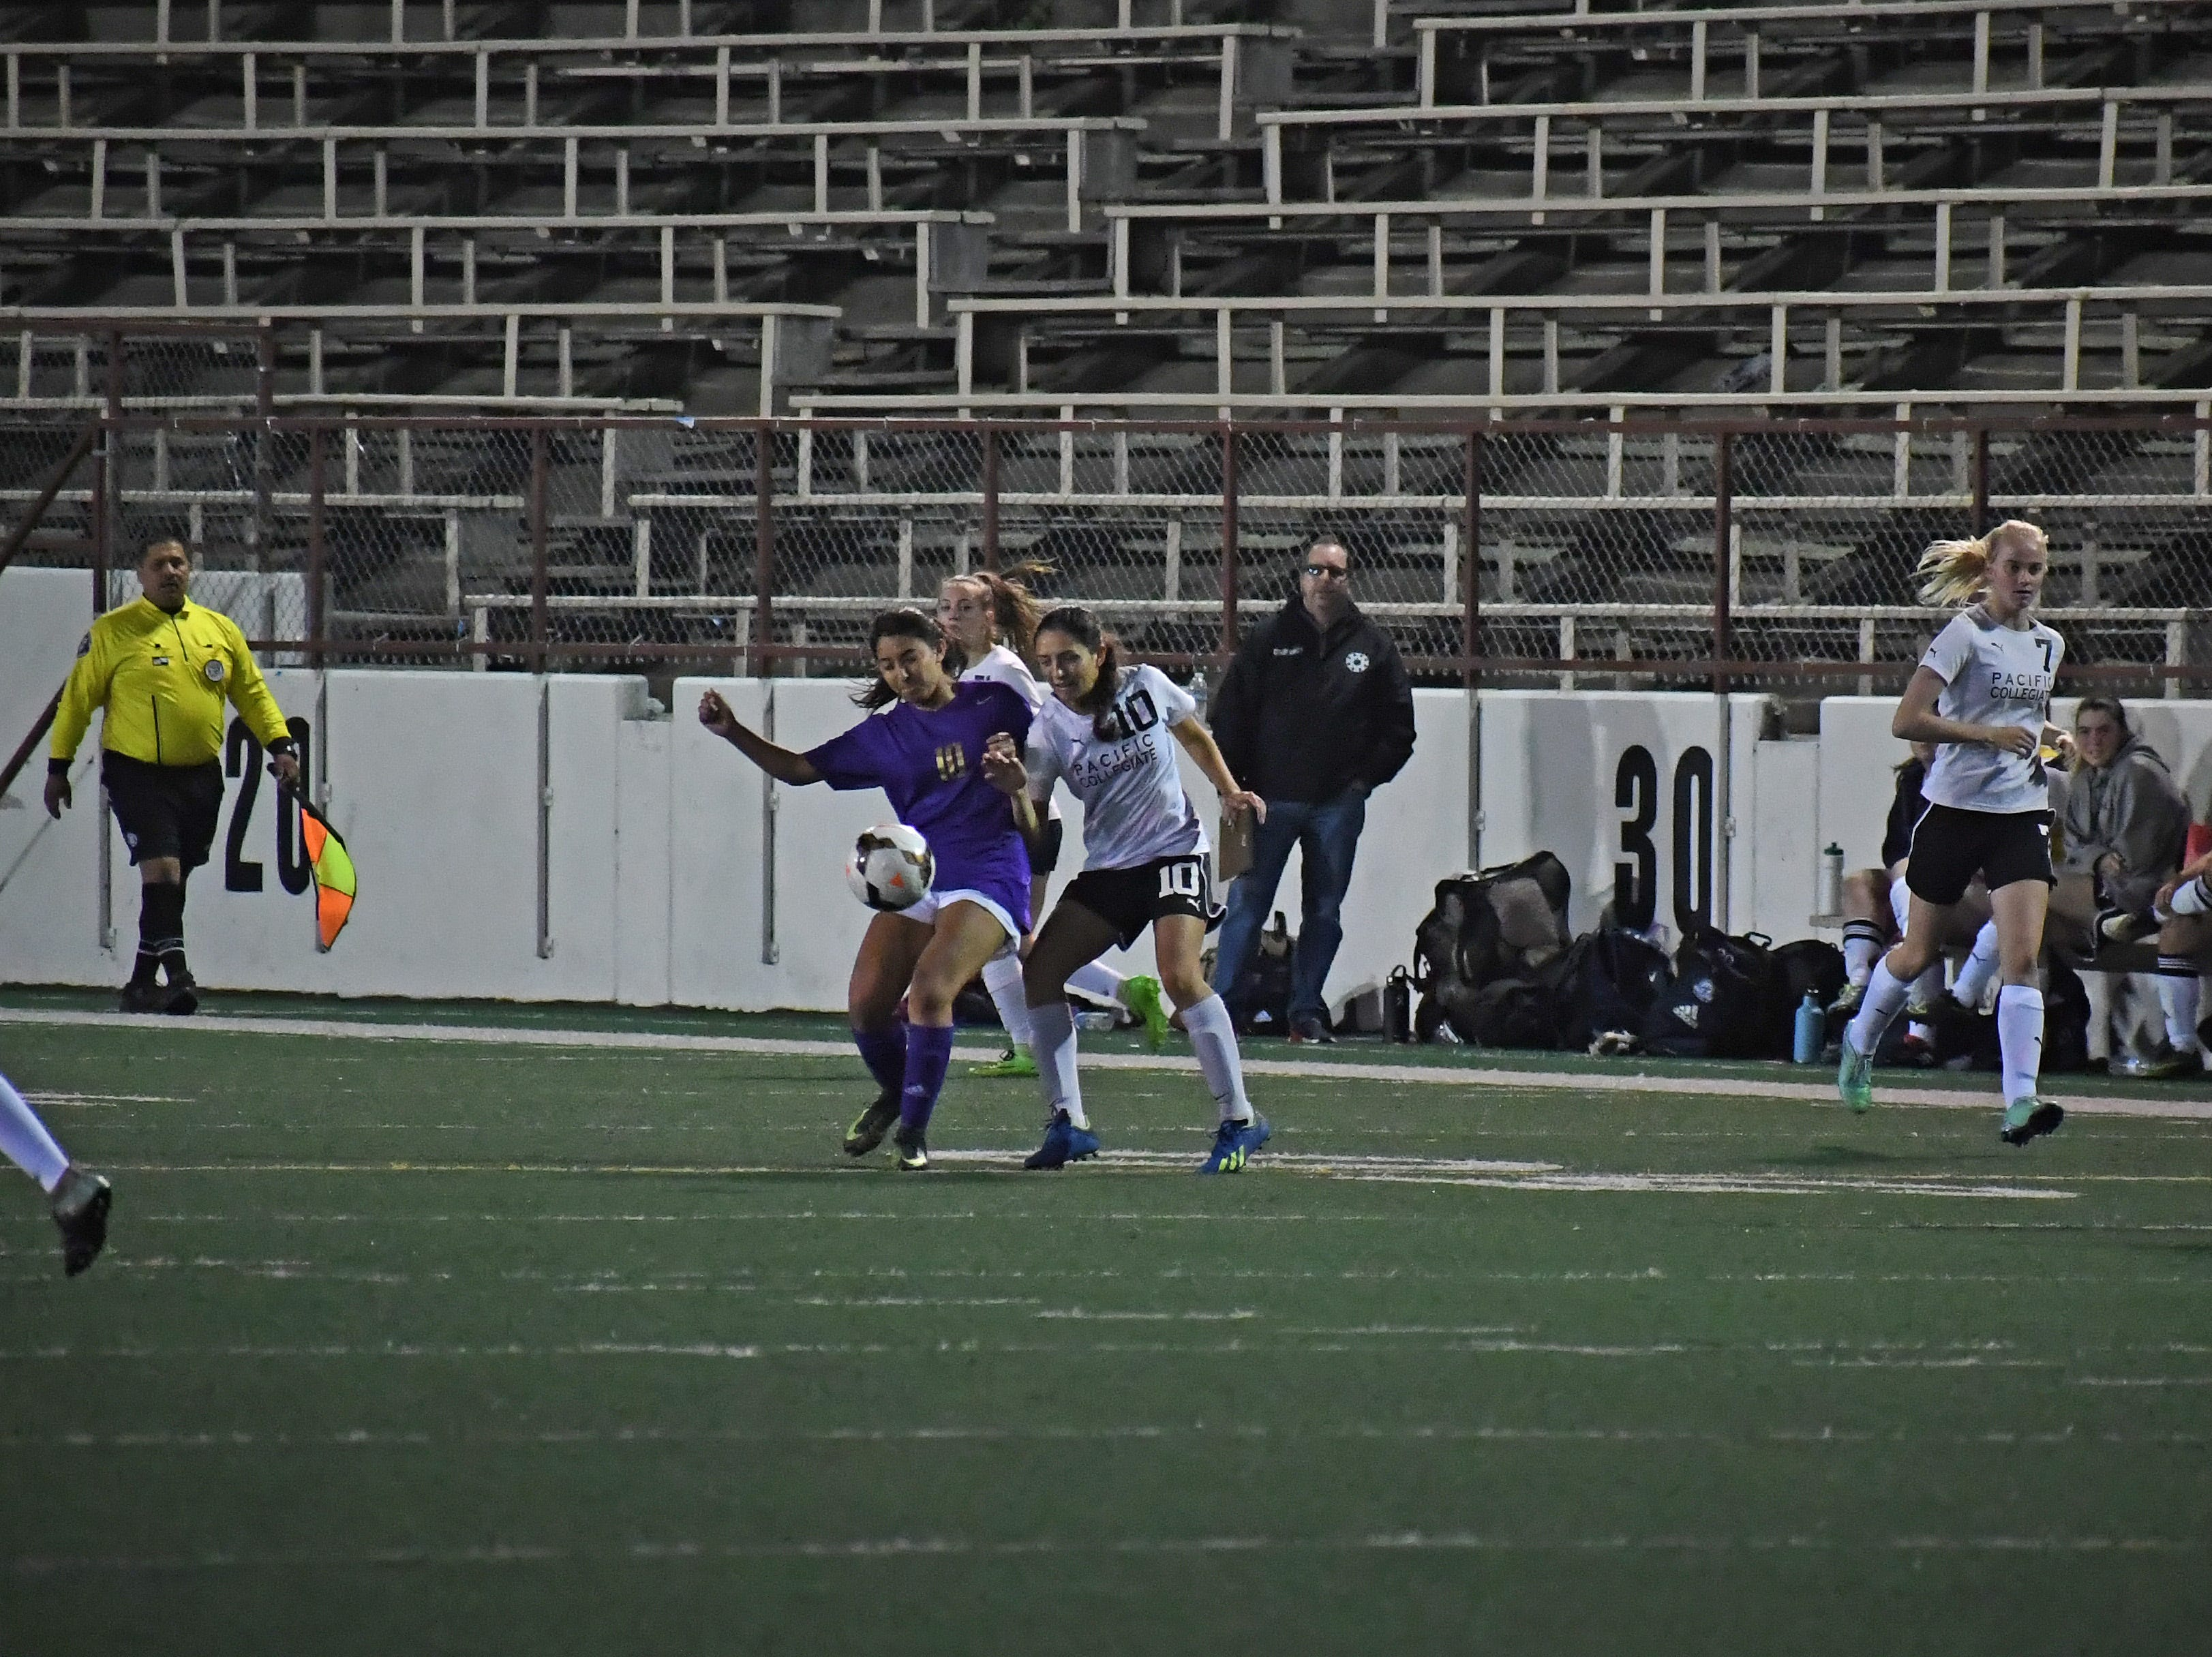 Senior Yadira Acosta (10) scored the lone goal of Monday's match.